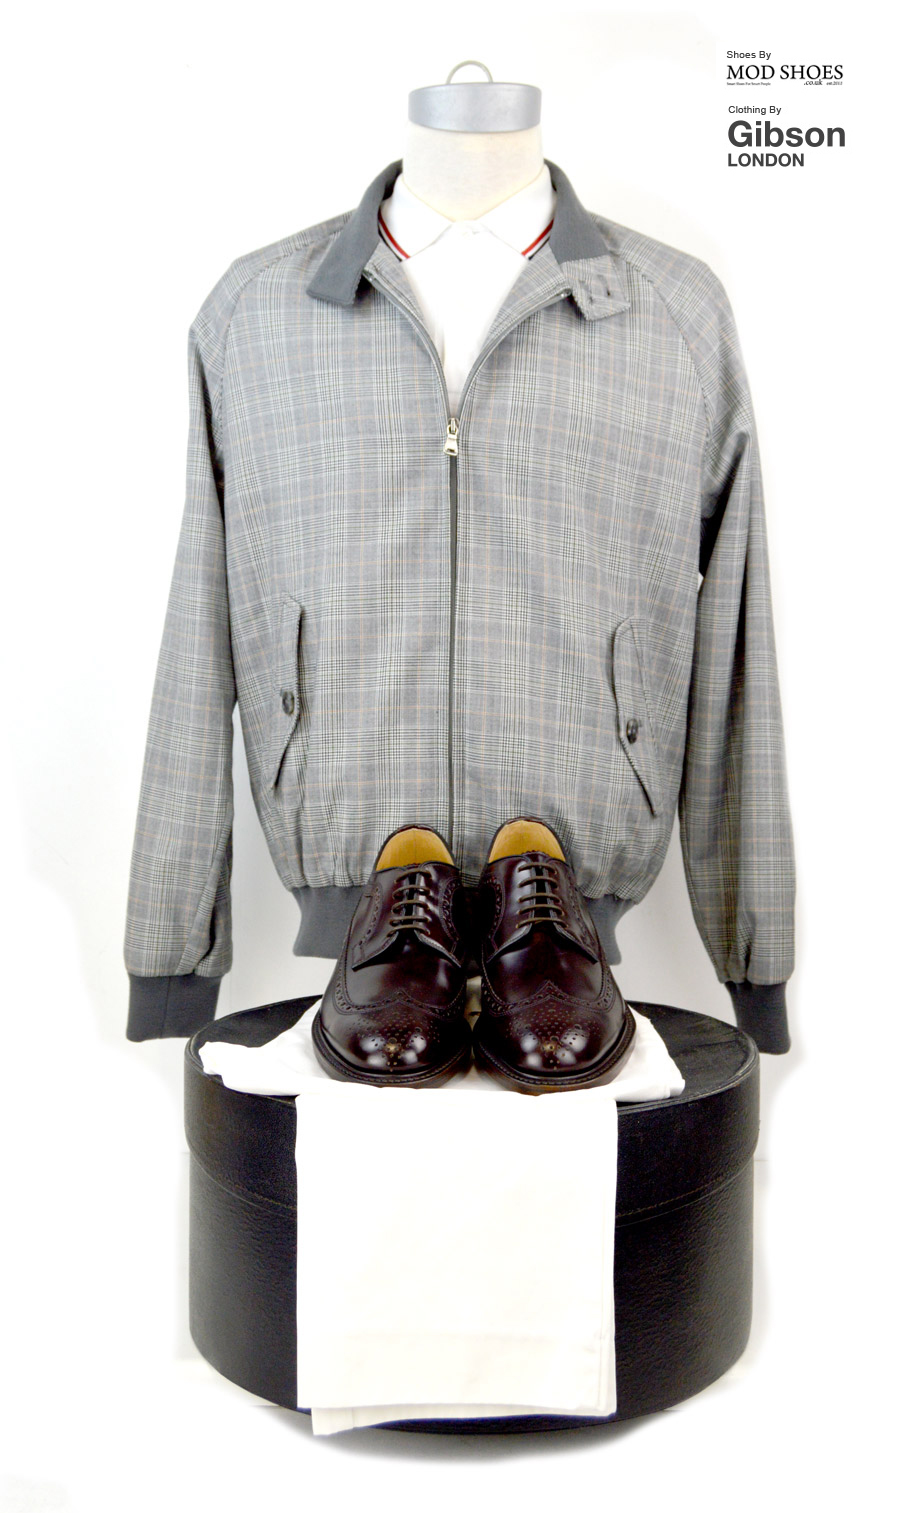 Modshoes-Oxblood-Royal-Brogues-with-Prince-of-Wales-Harrington-from-Gibson-Clothes